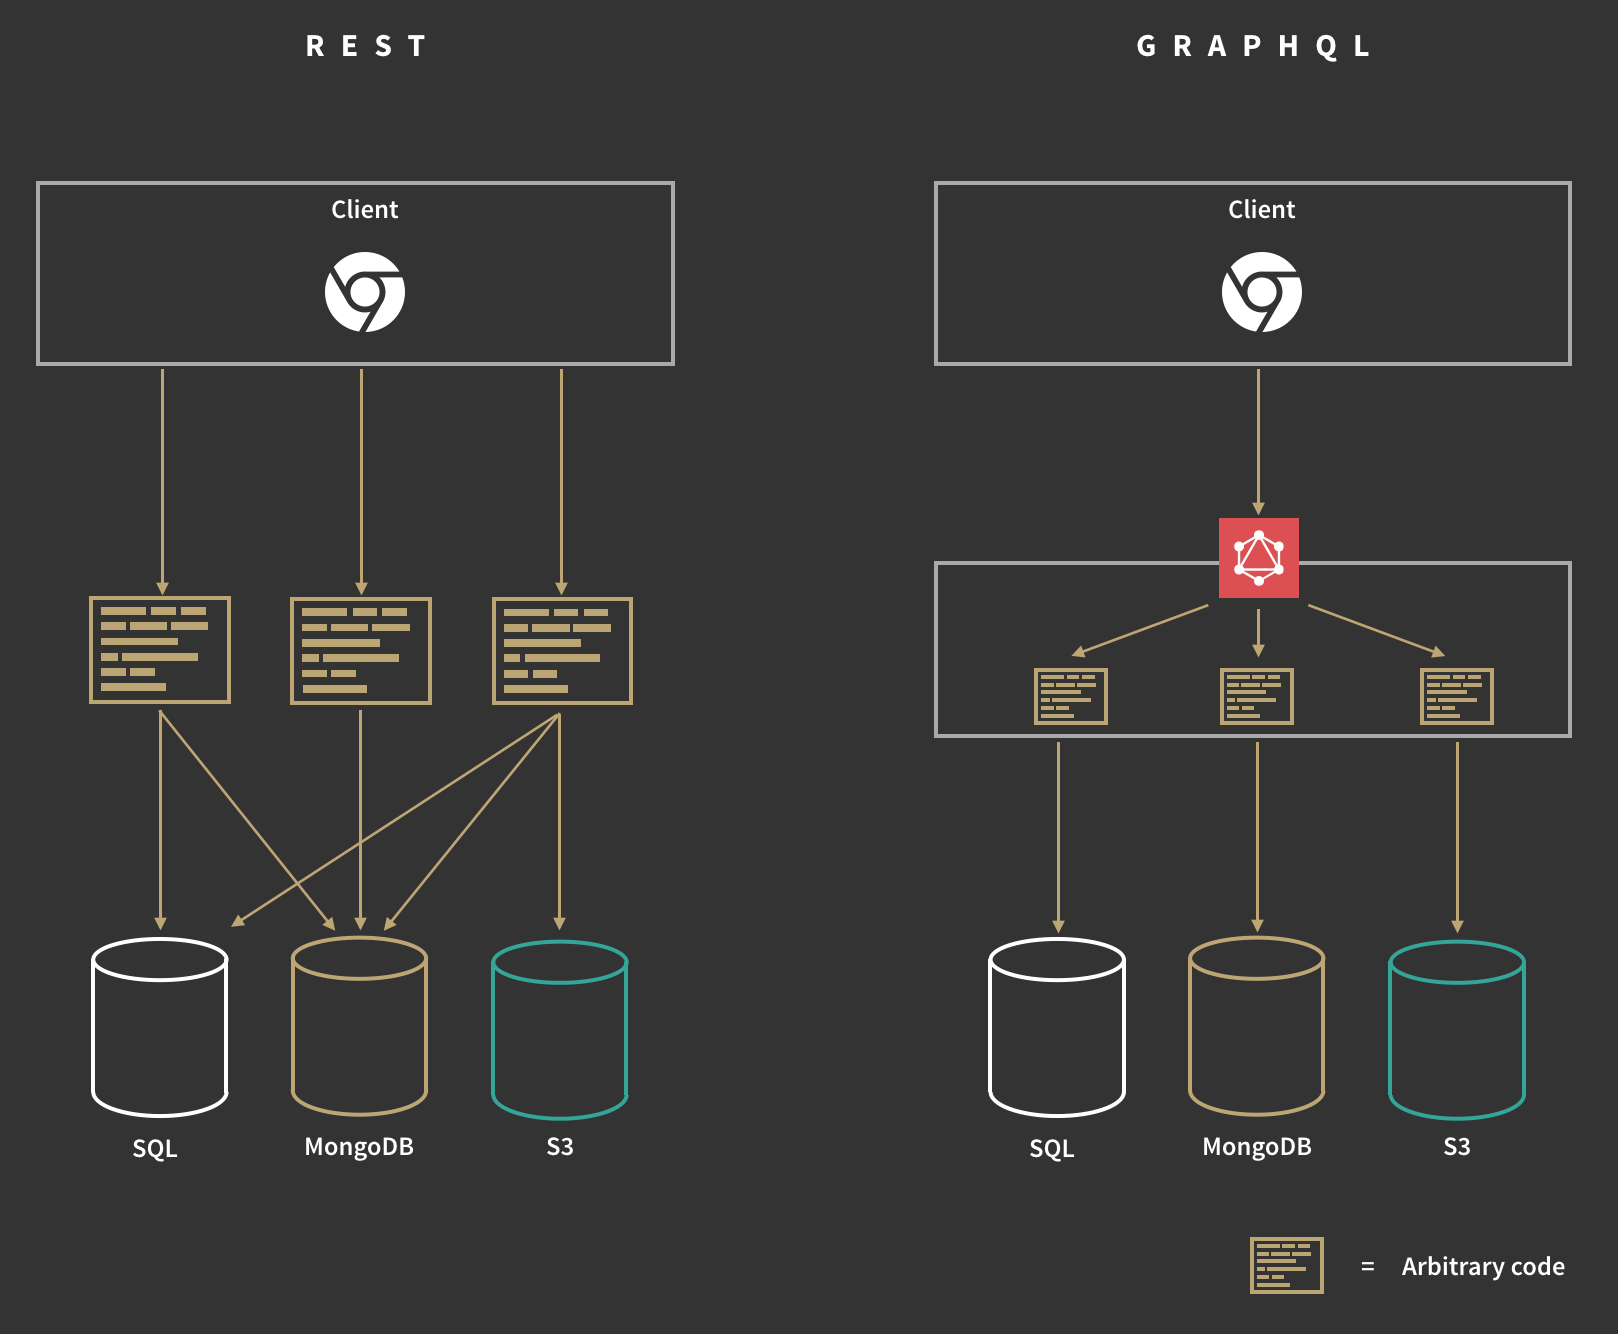 Architecture diagram of REST versus GraphQL